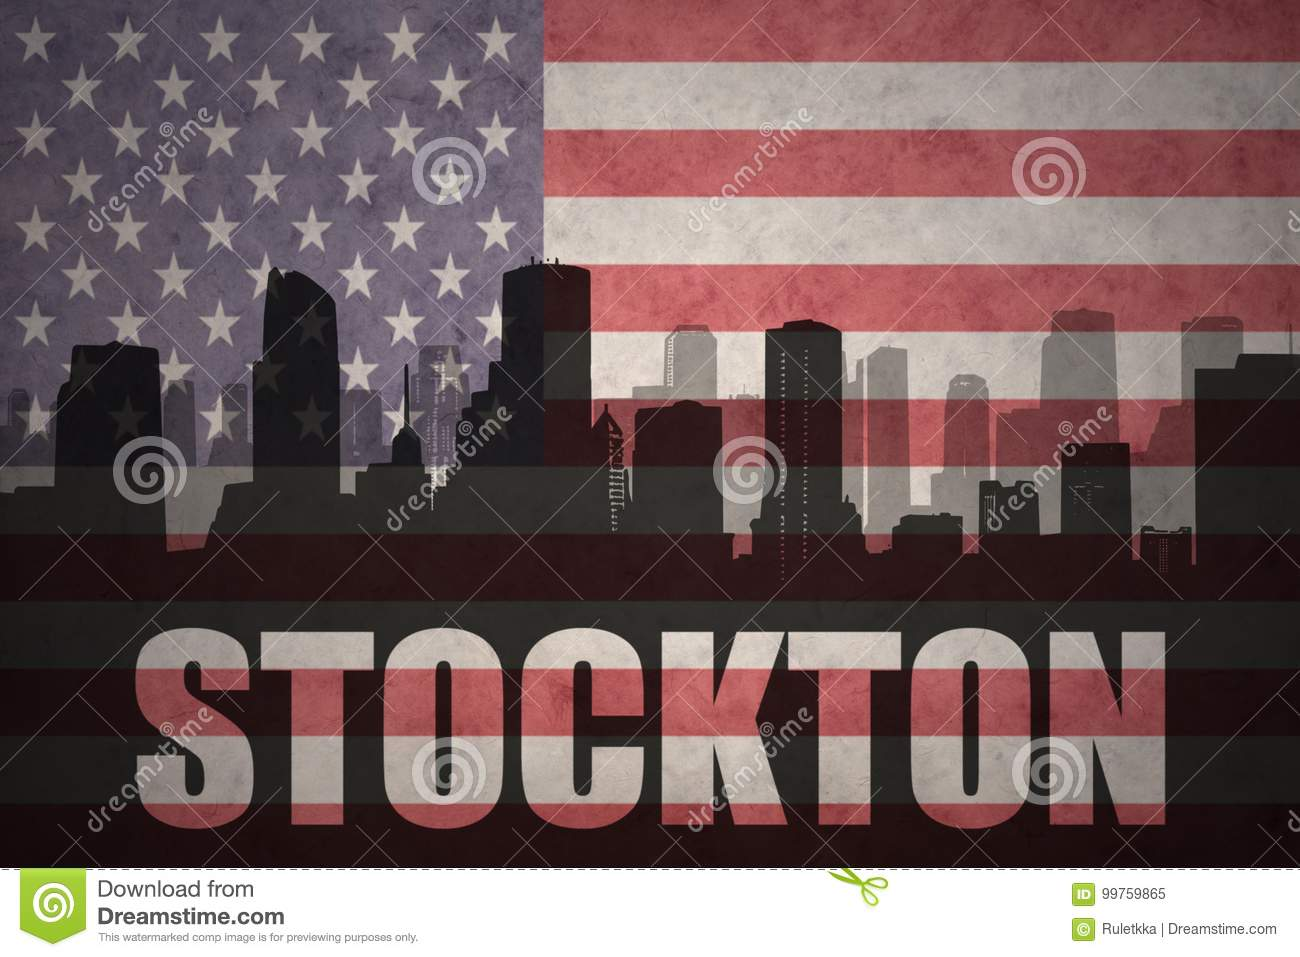 Abstract silhouette of the city with text Stockton at the vintage american flag